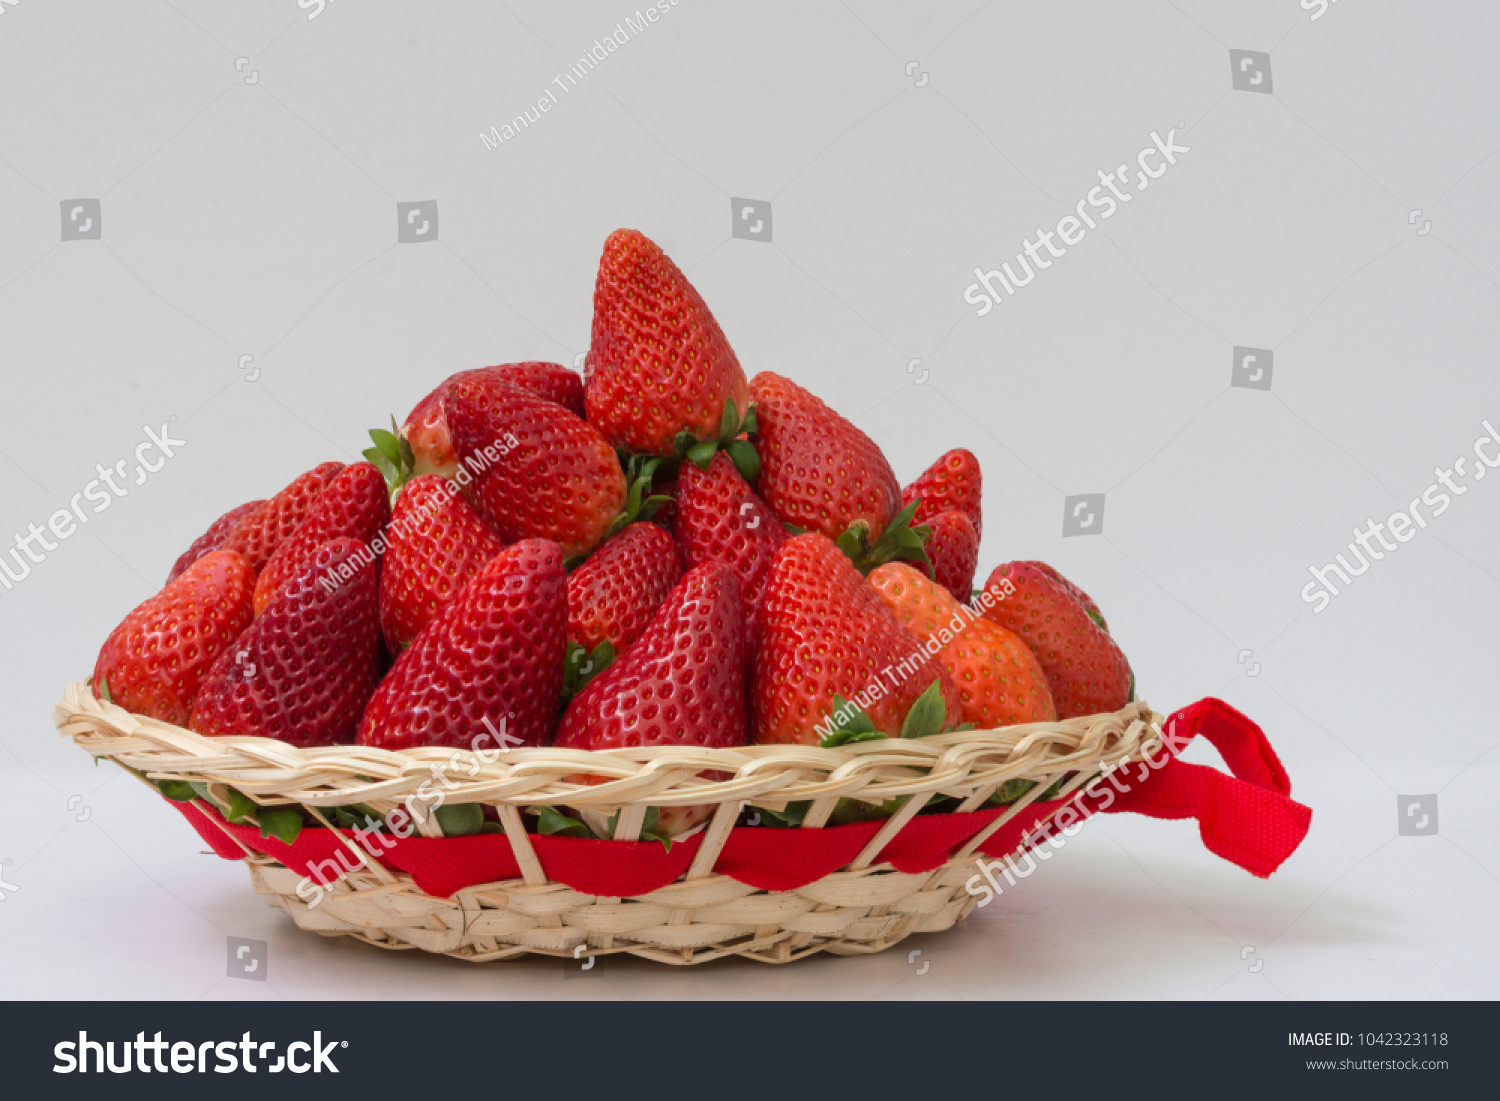 stock-photo-basket-with-strawberries-and